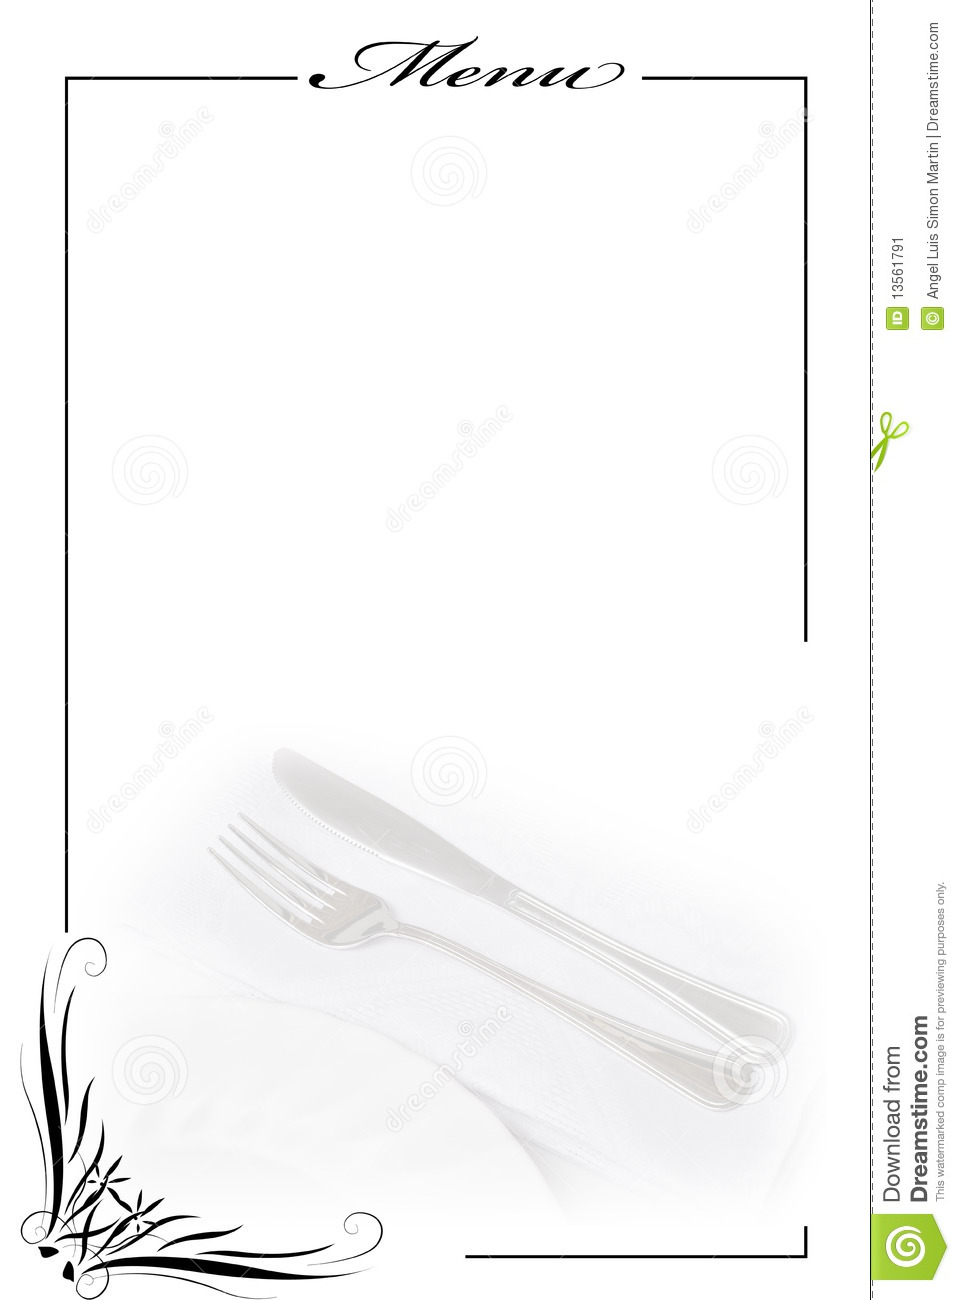 More similar stock images of ` Menu card in white. `